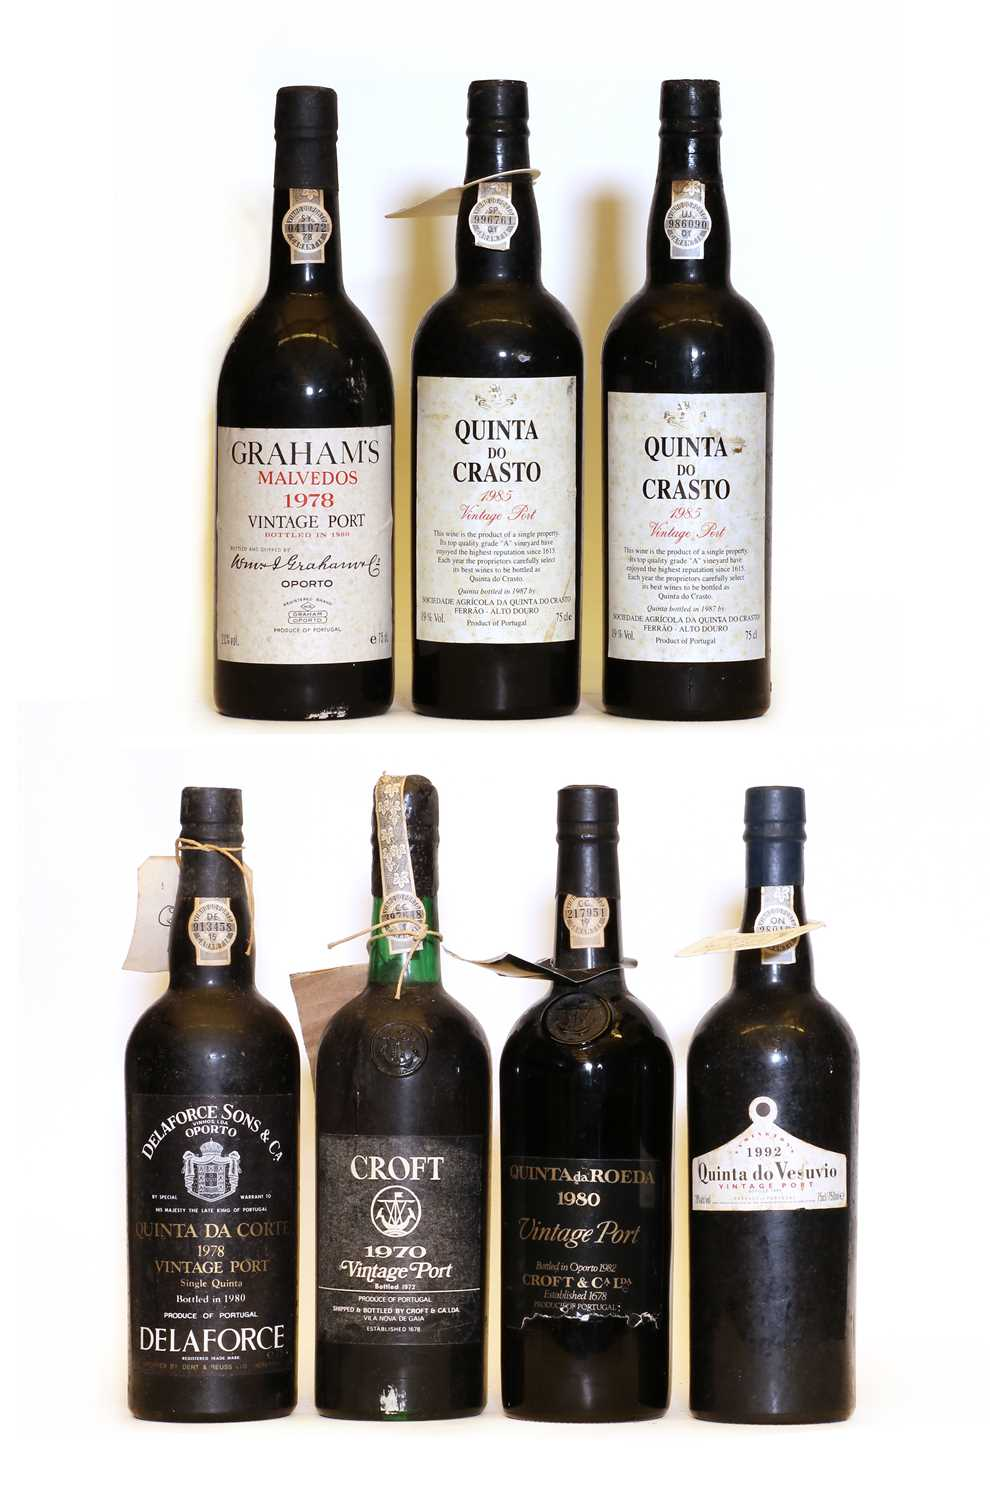 Assorted Vintage Port: Quinta do Vesuvio, Vintage Port, 1992, one bottle and six various others